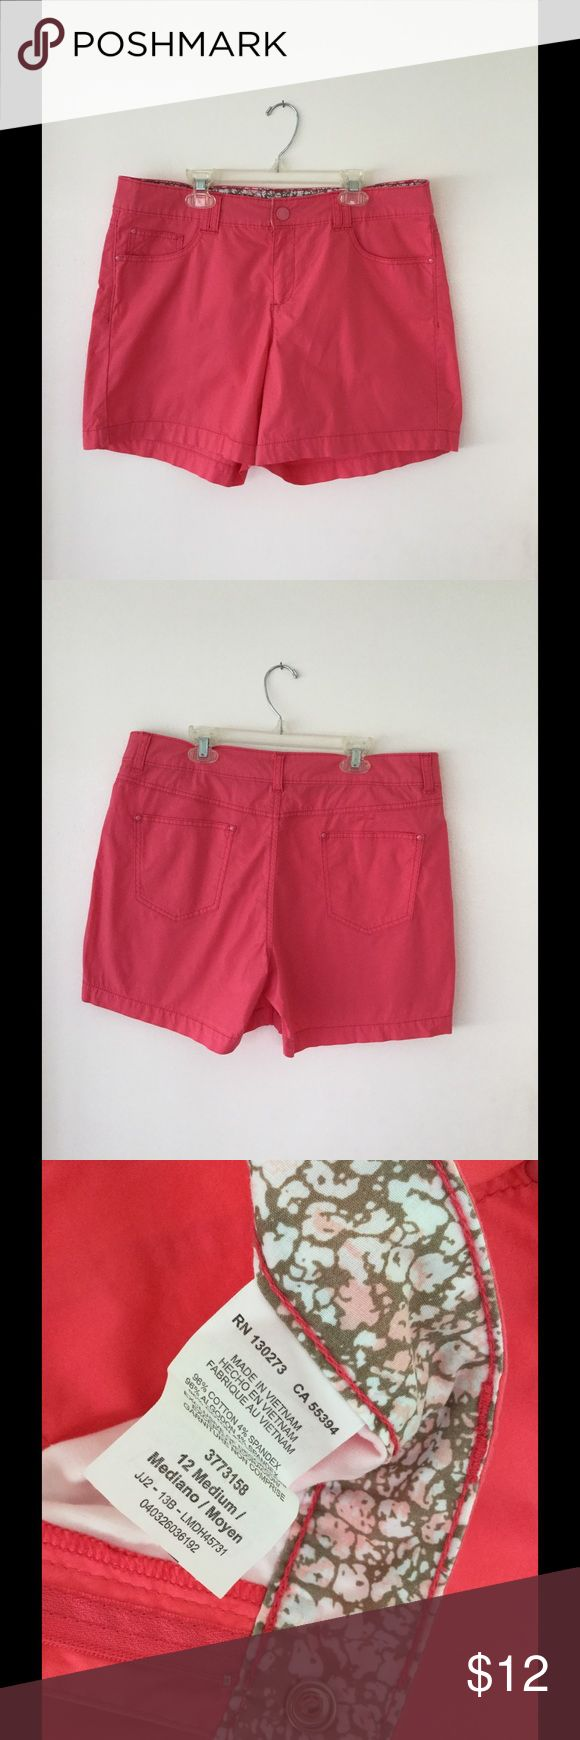 "Lee women's pink shorts size 12 medium. Lee brand women's pink shorts in size 12 medium. 4 1/2"" inseam. Front and back pockets. Snap & zipper front closure. Belt loops. 96% cotton/2% spandex. Nice light and comfortable material. Natural fit just below the waist. Like new condition. Lee Shorts"